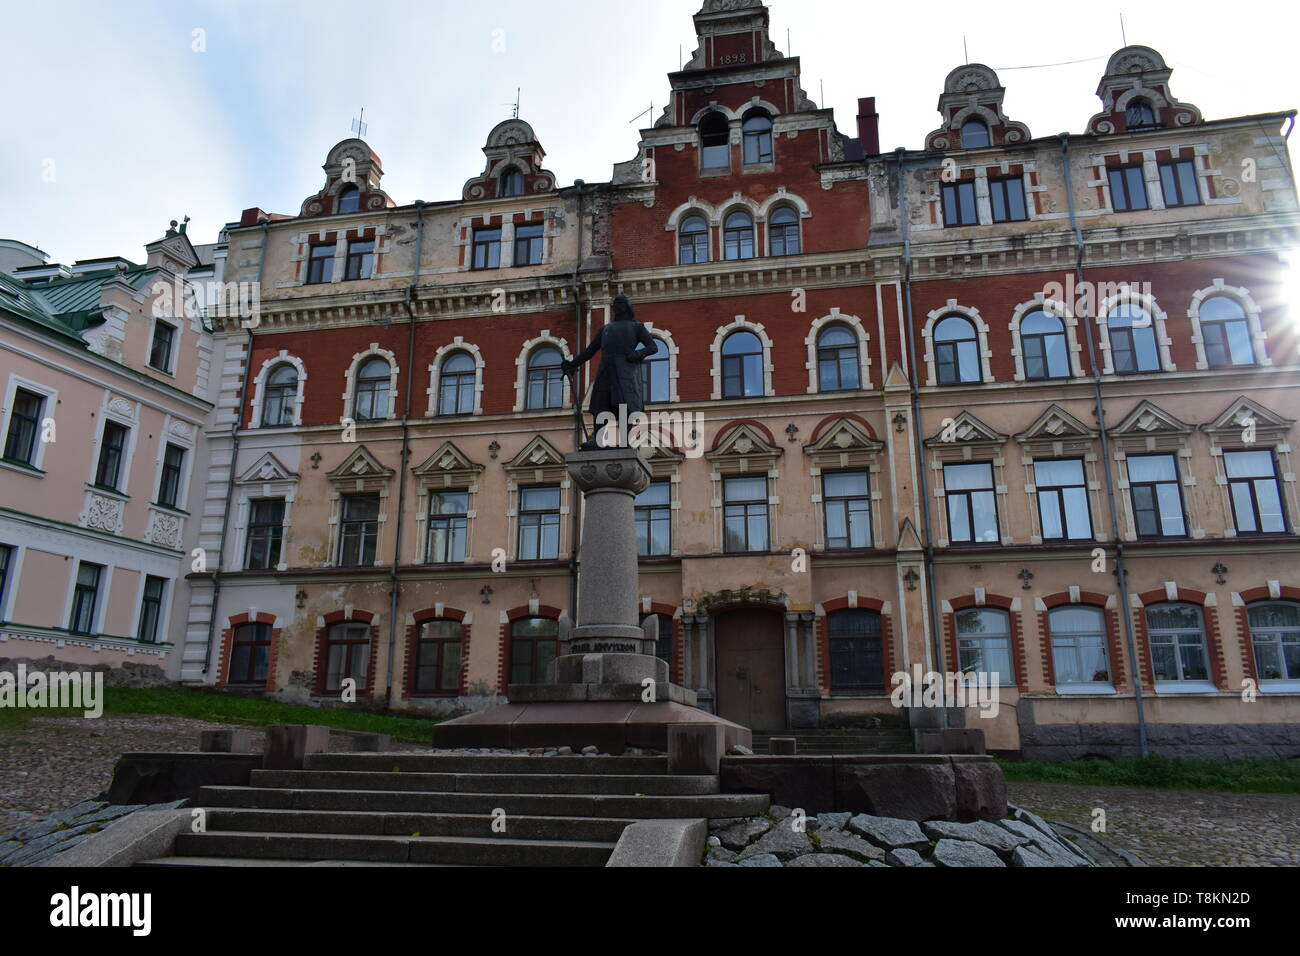 Viking monument. Down town square.  Hansa style architecture. Vyborg Russia - Stock Image